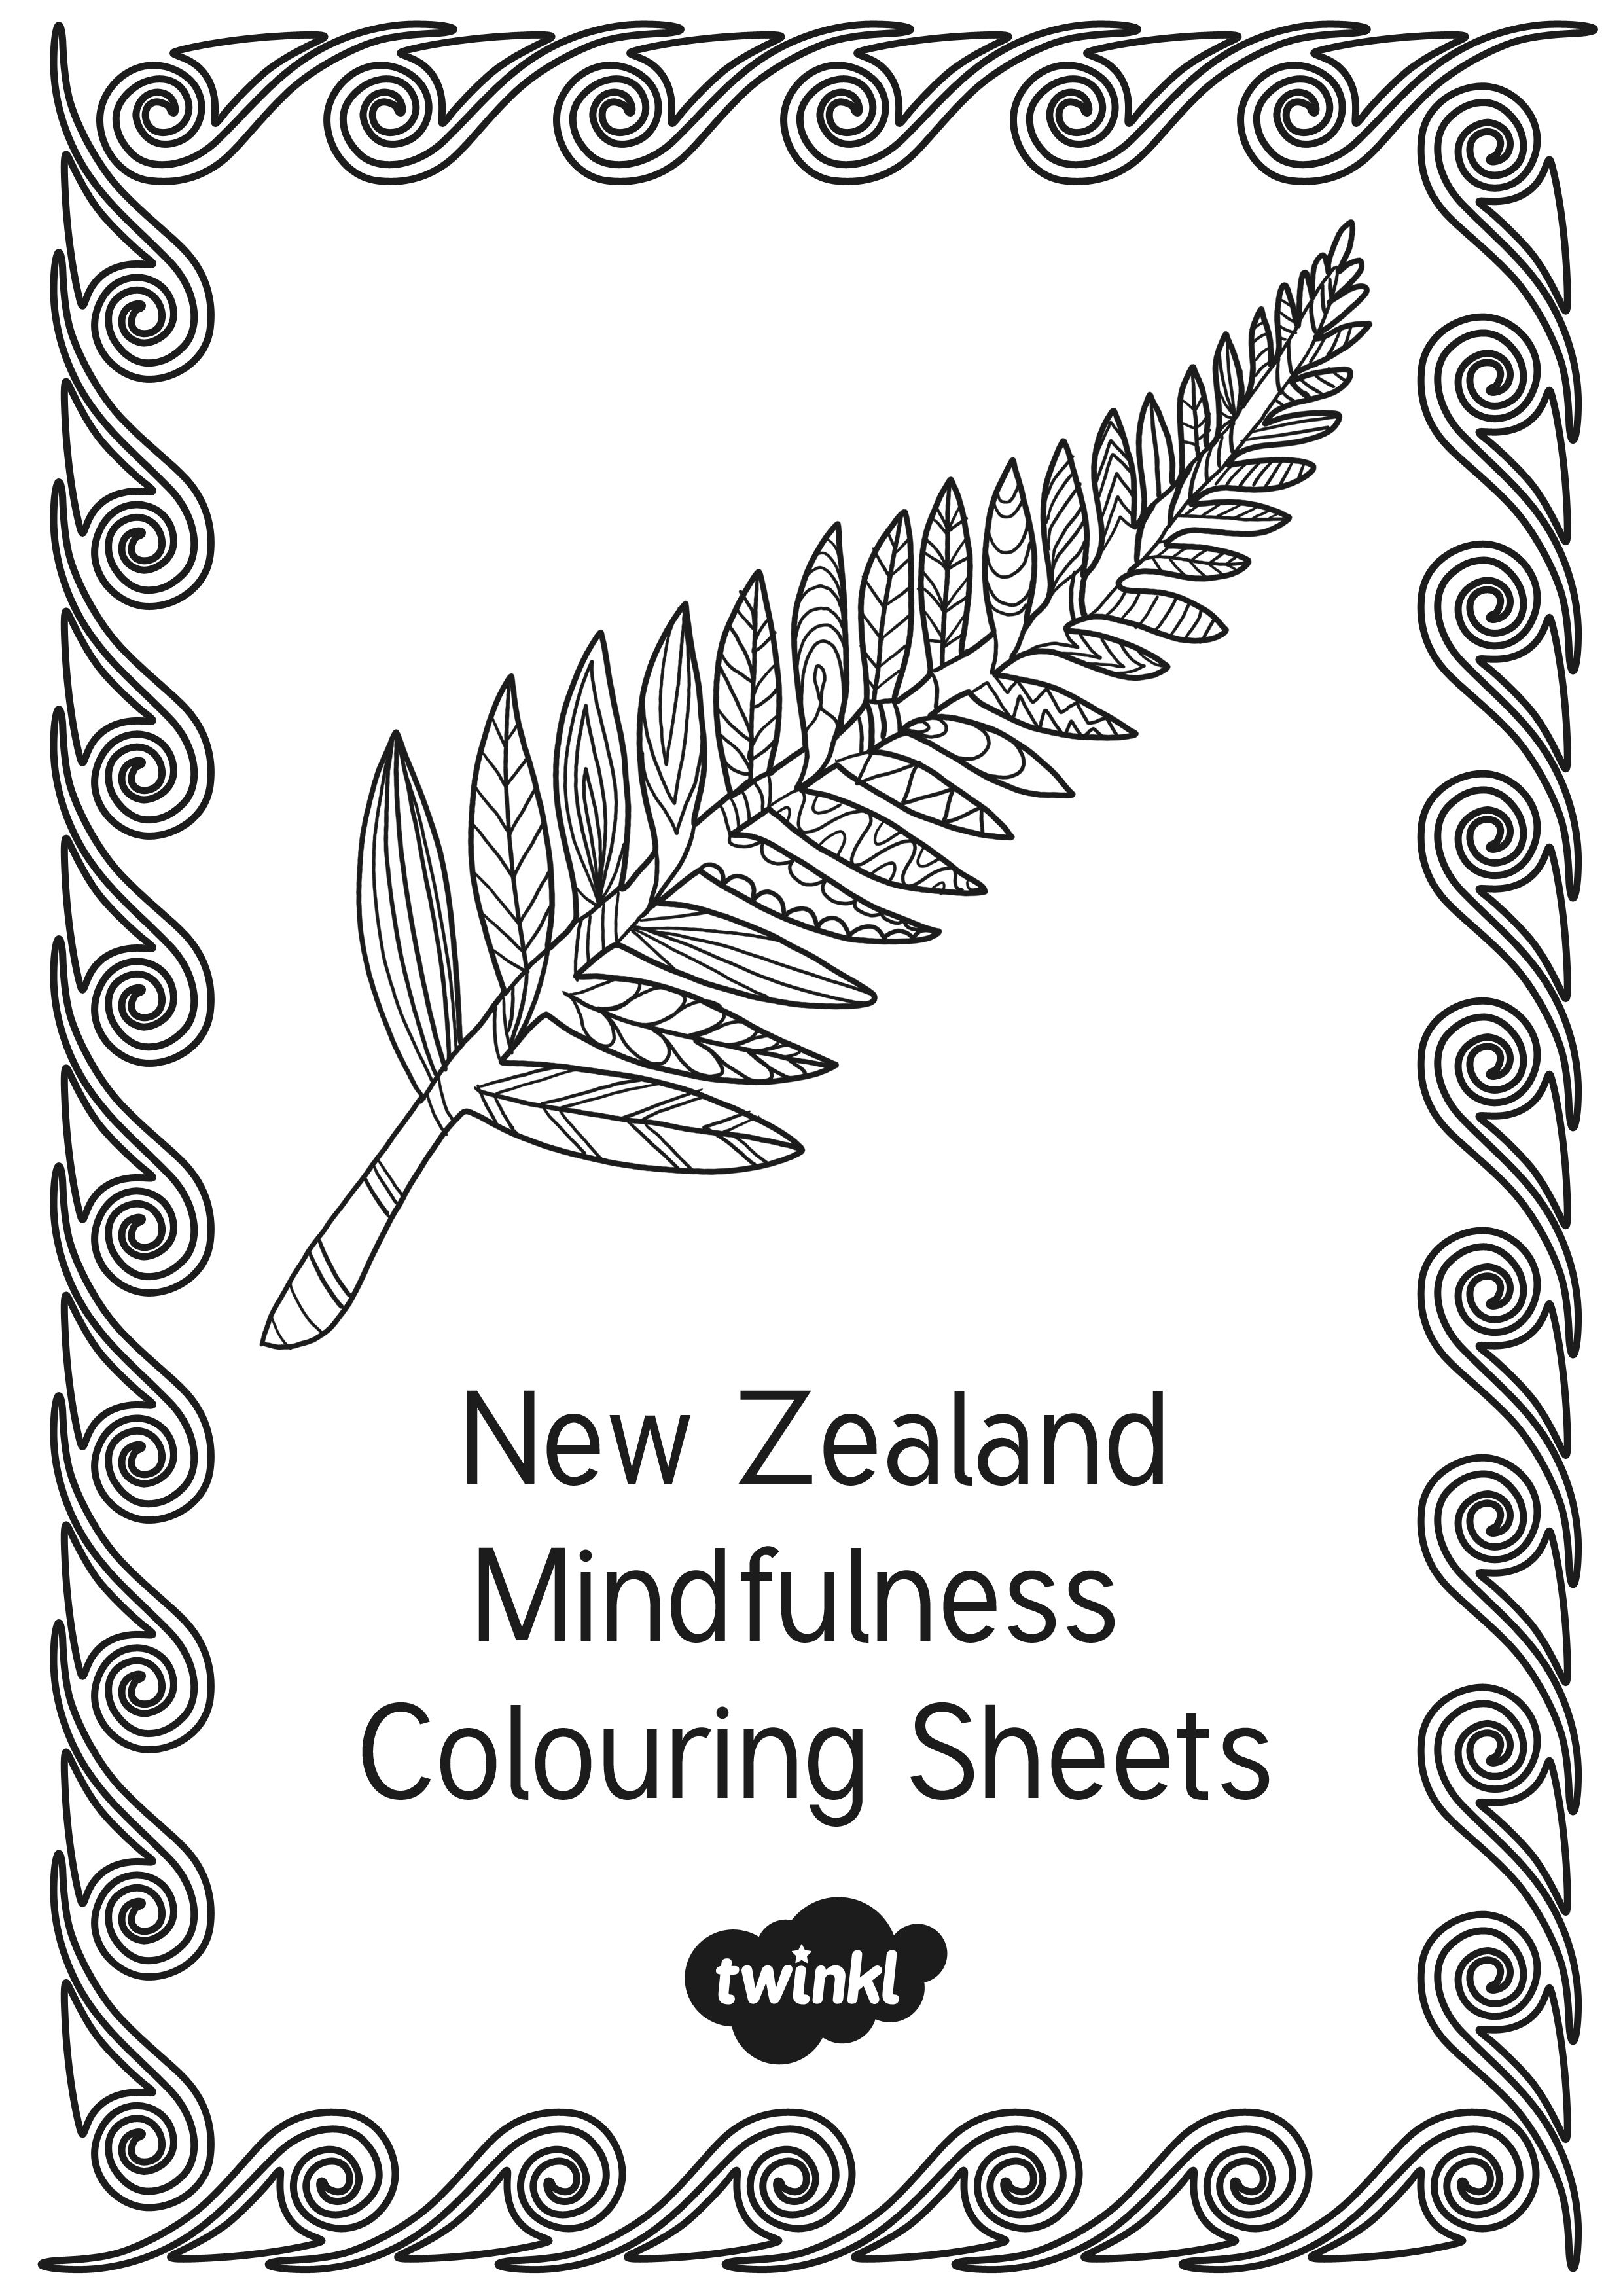 New Zealand Mindfulness Colouring Sheets Mindfulness Colouring Mindfulness Colouring Sheets Coloring Sheets